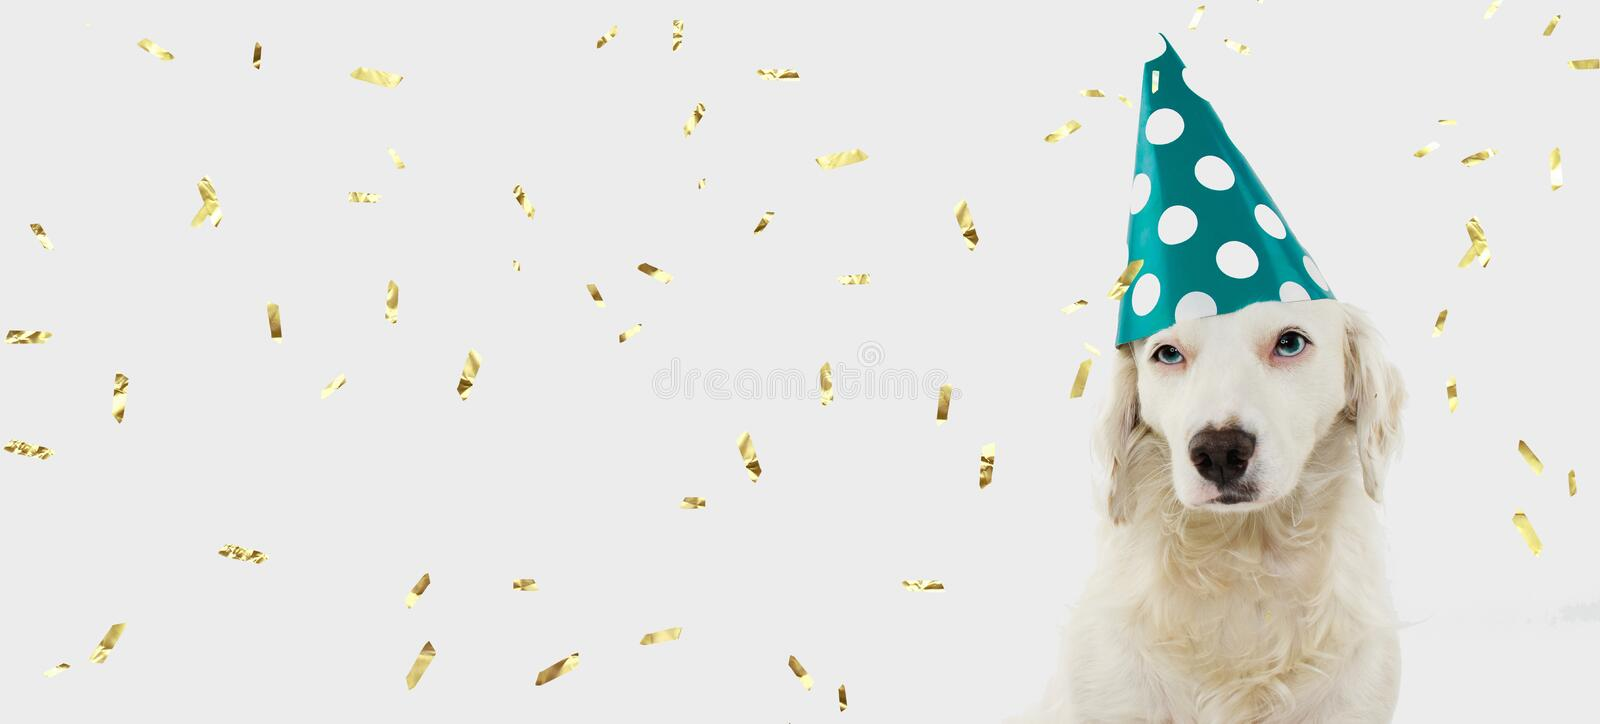 BANNER BIRTHDAY OR CARNIVAL DOG. PUPPY WEARING A GREEN POLKA DOT HAT. ISOLATED ON WHITE BACKGROUND WITH GOLDEN CONFETTI FALLING.  royalty free stock photography